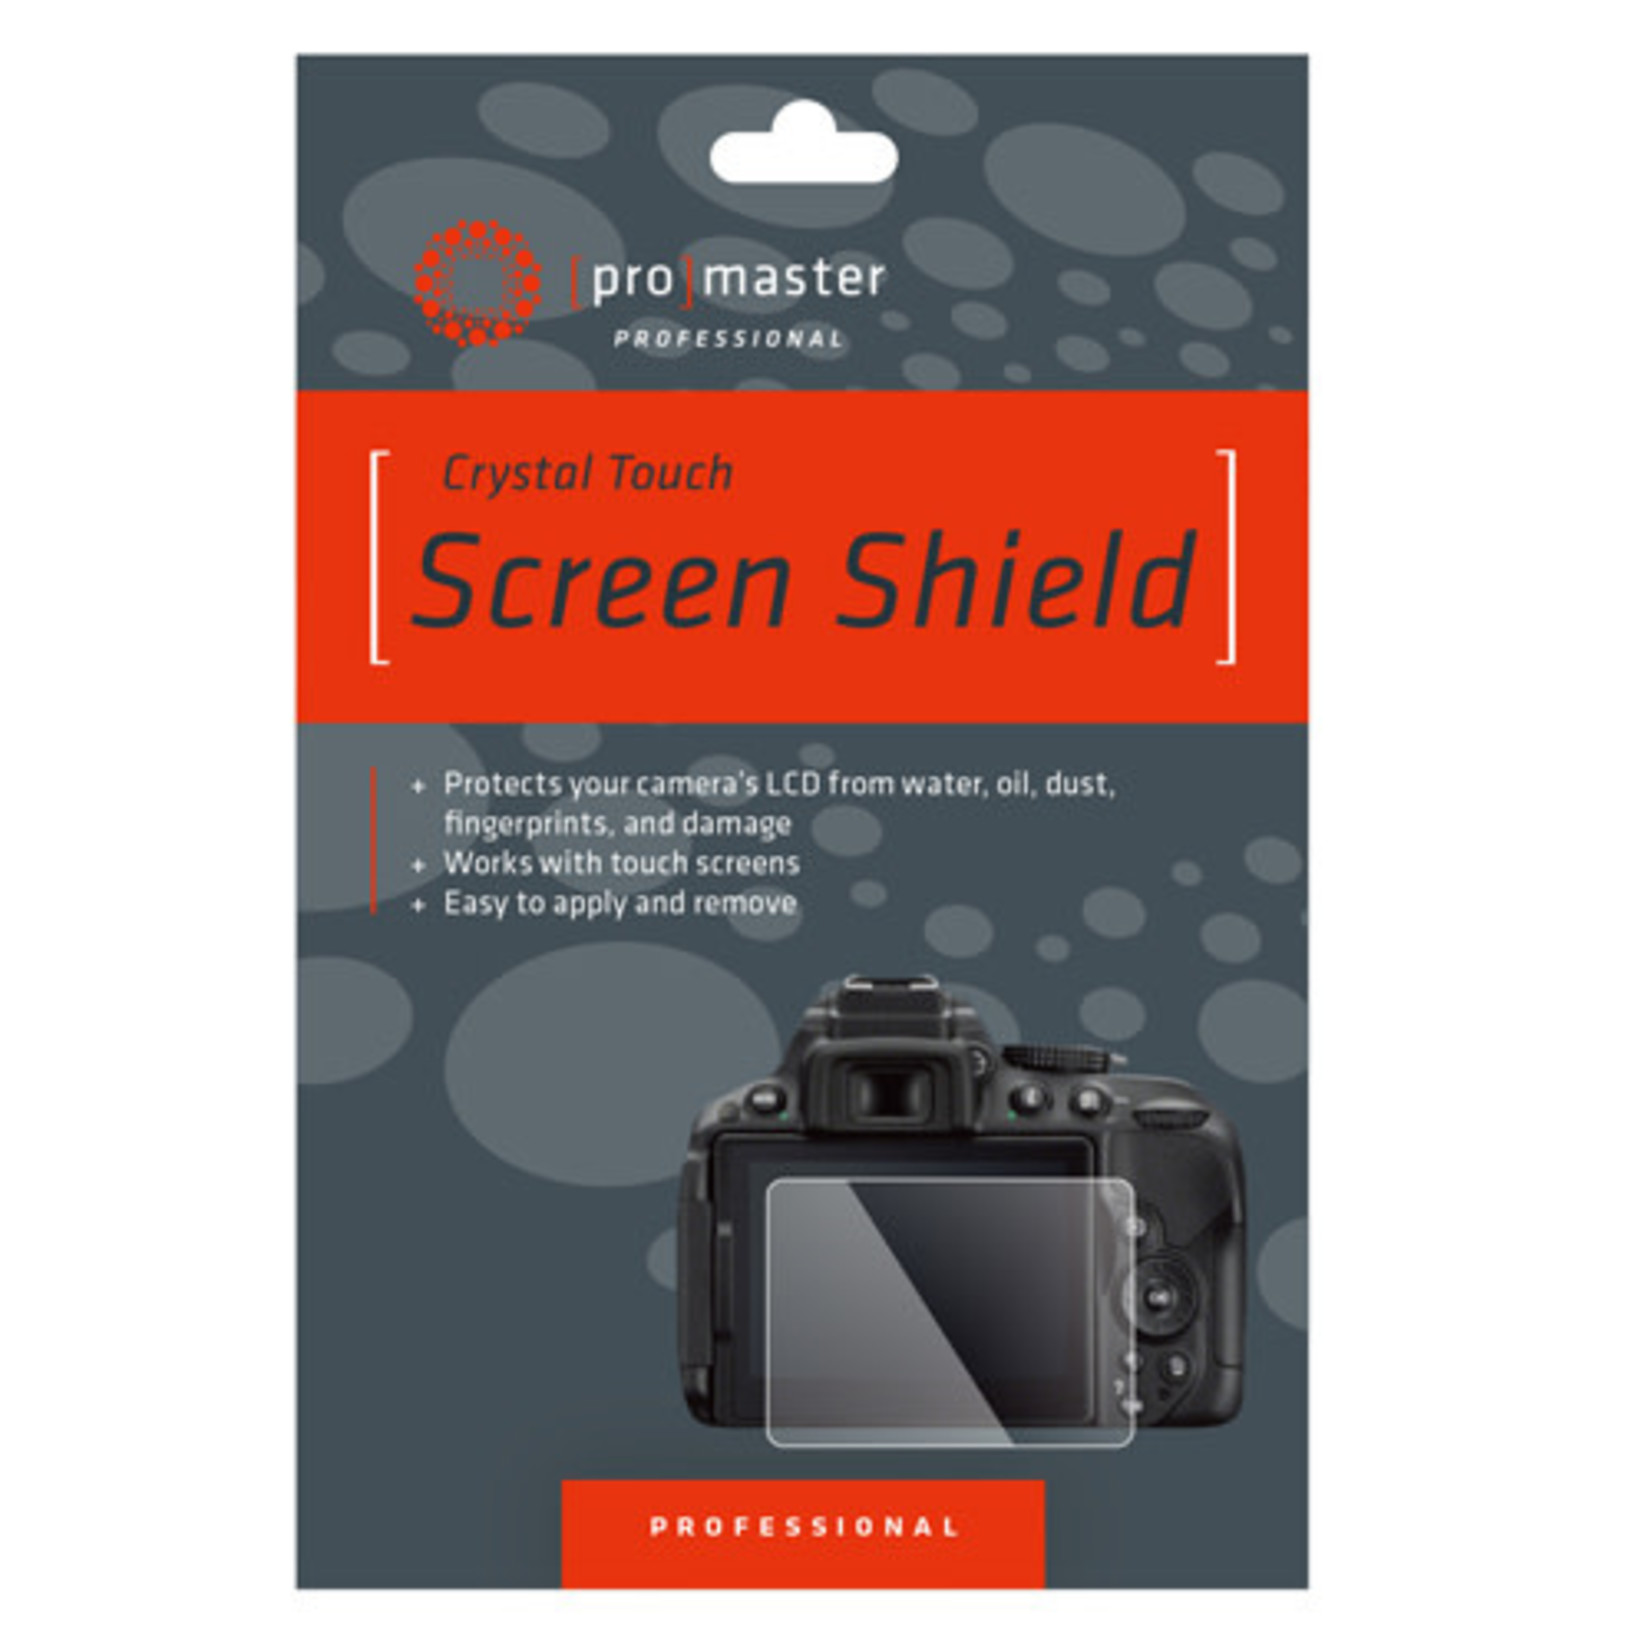 ProMaster Crystal Touch Screen Shield - Nikon D500